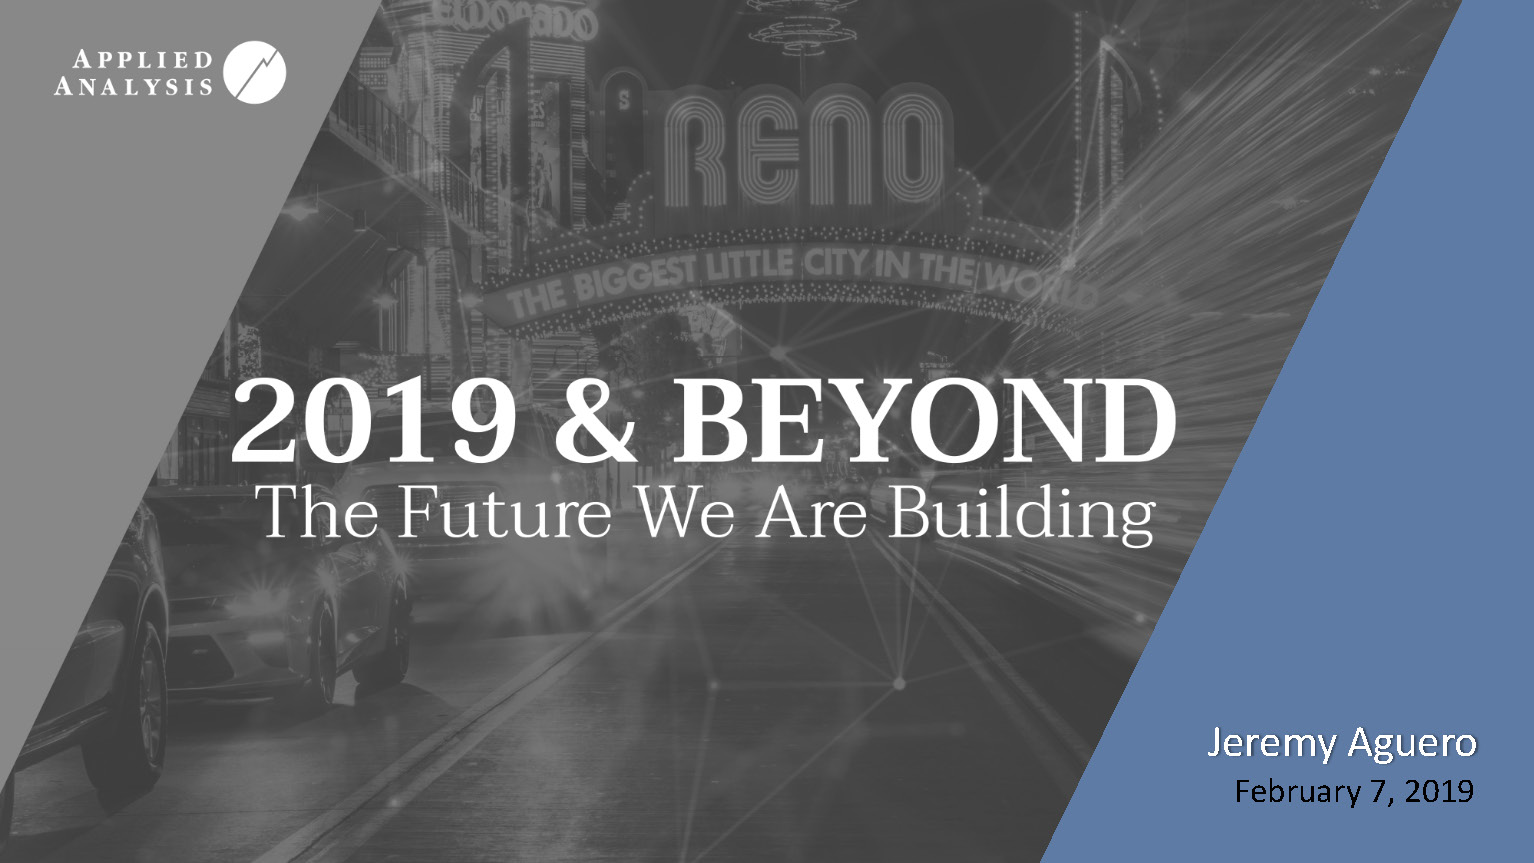 Economic Development Authority of Western Nevada 2019 & Beyond: The Future We Are Building